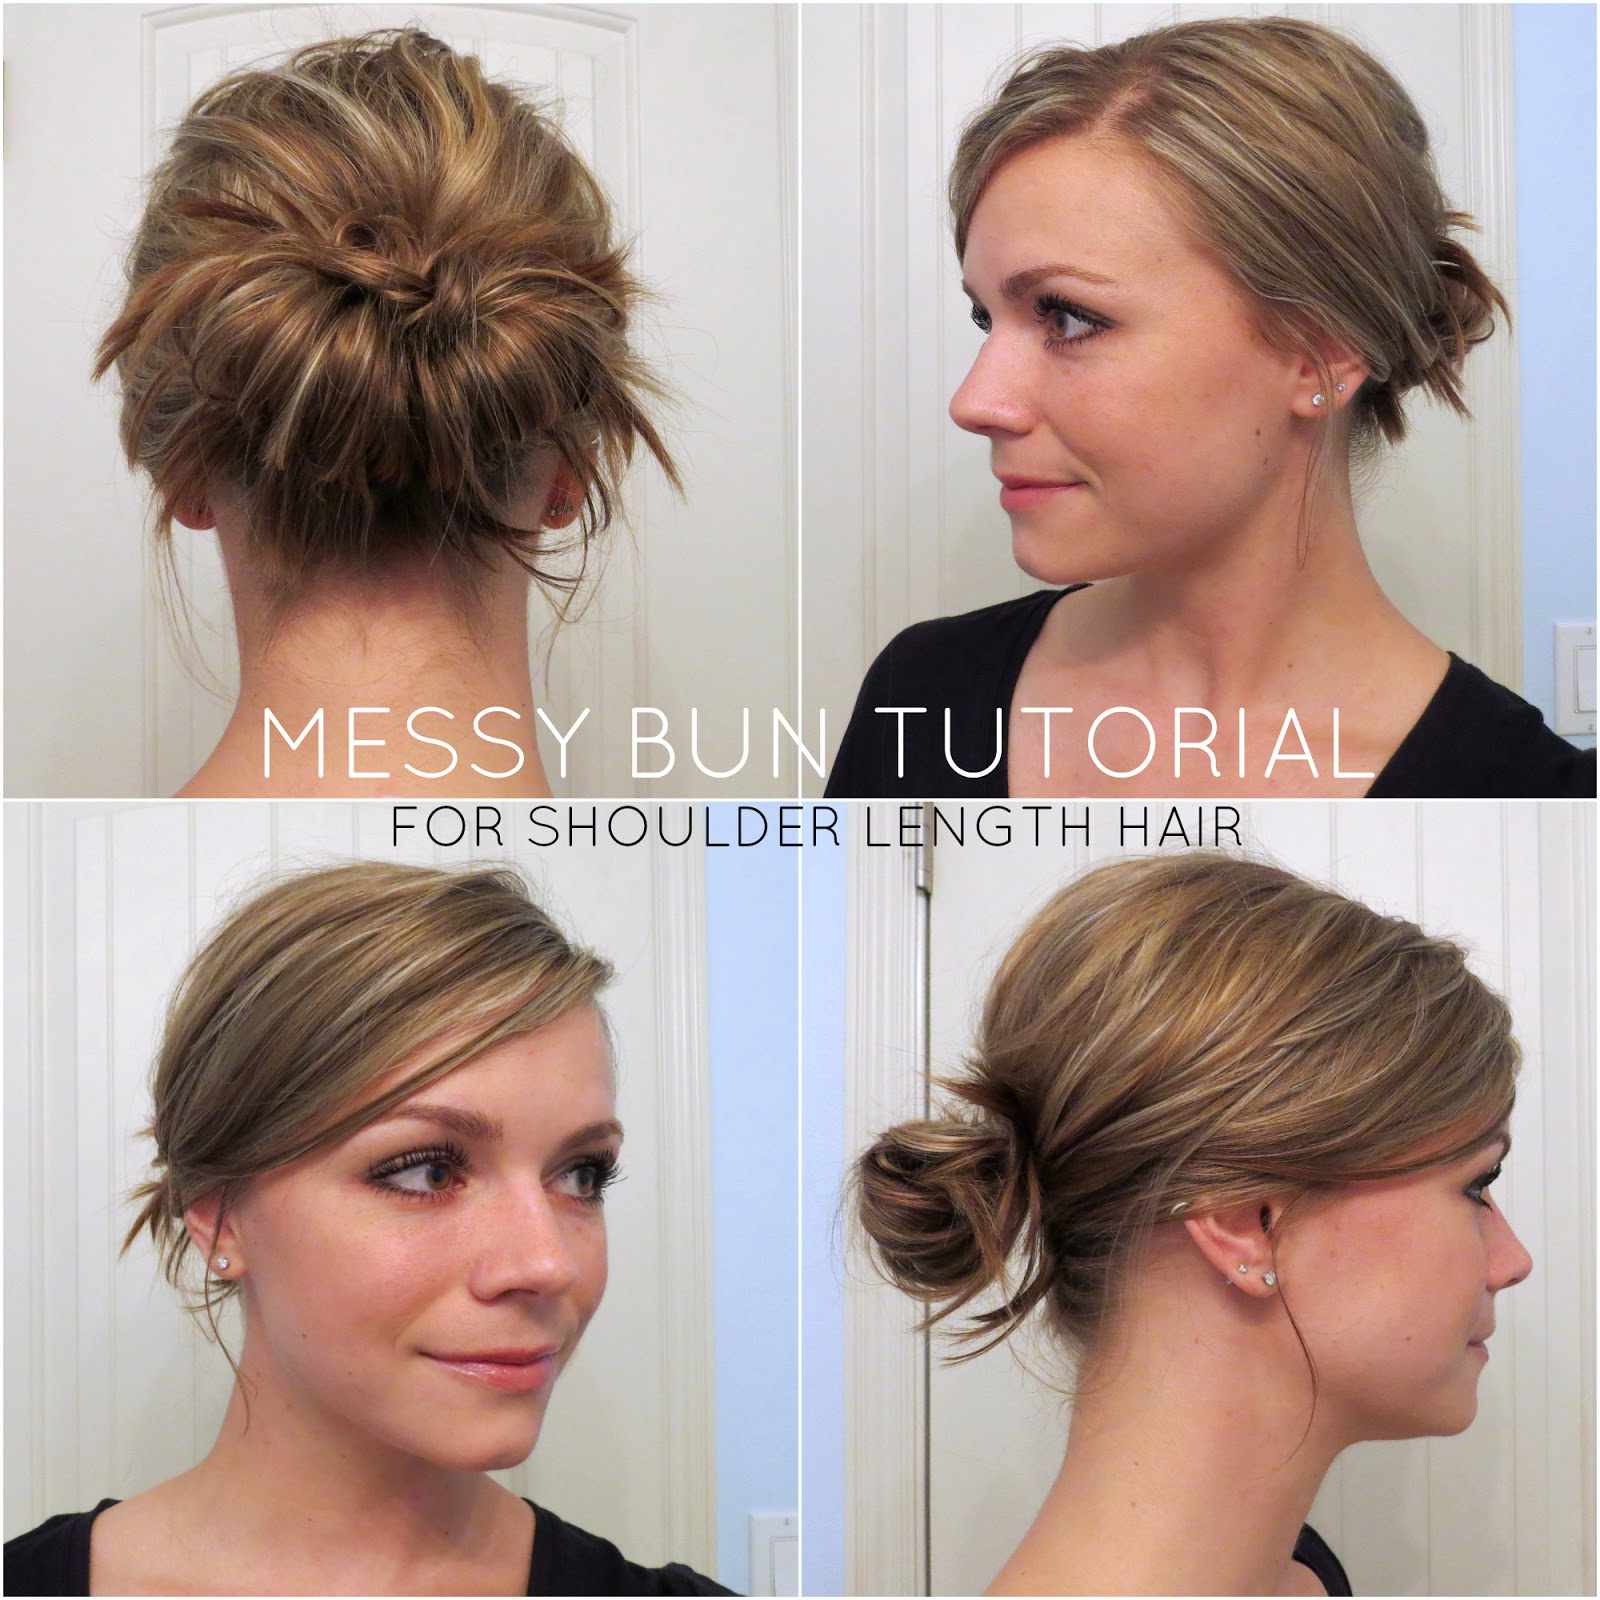 Bye Bye Beehive │ A Hairstyle Blog Messy Bun for Shoulder Length